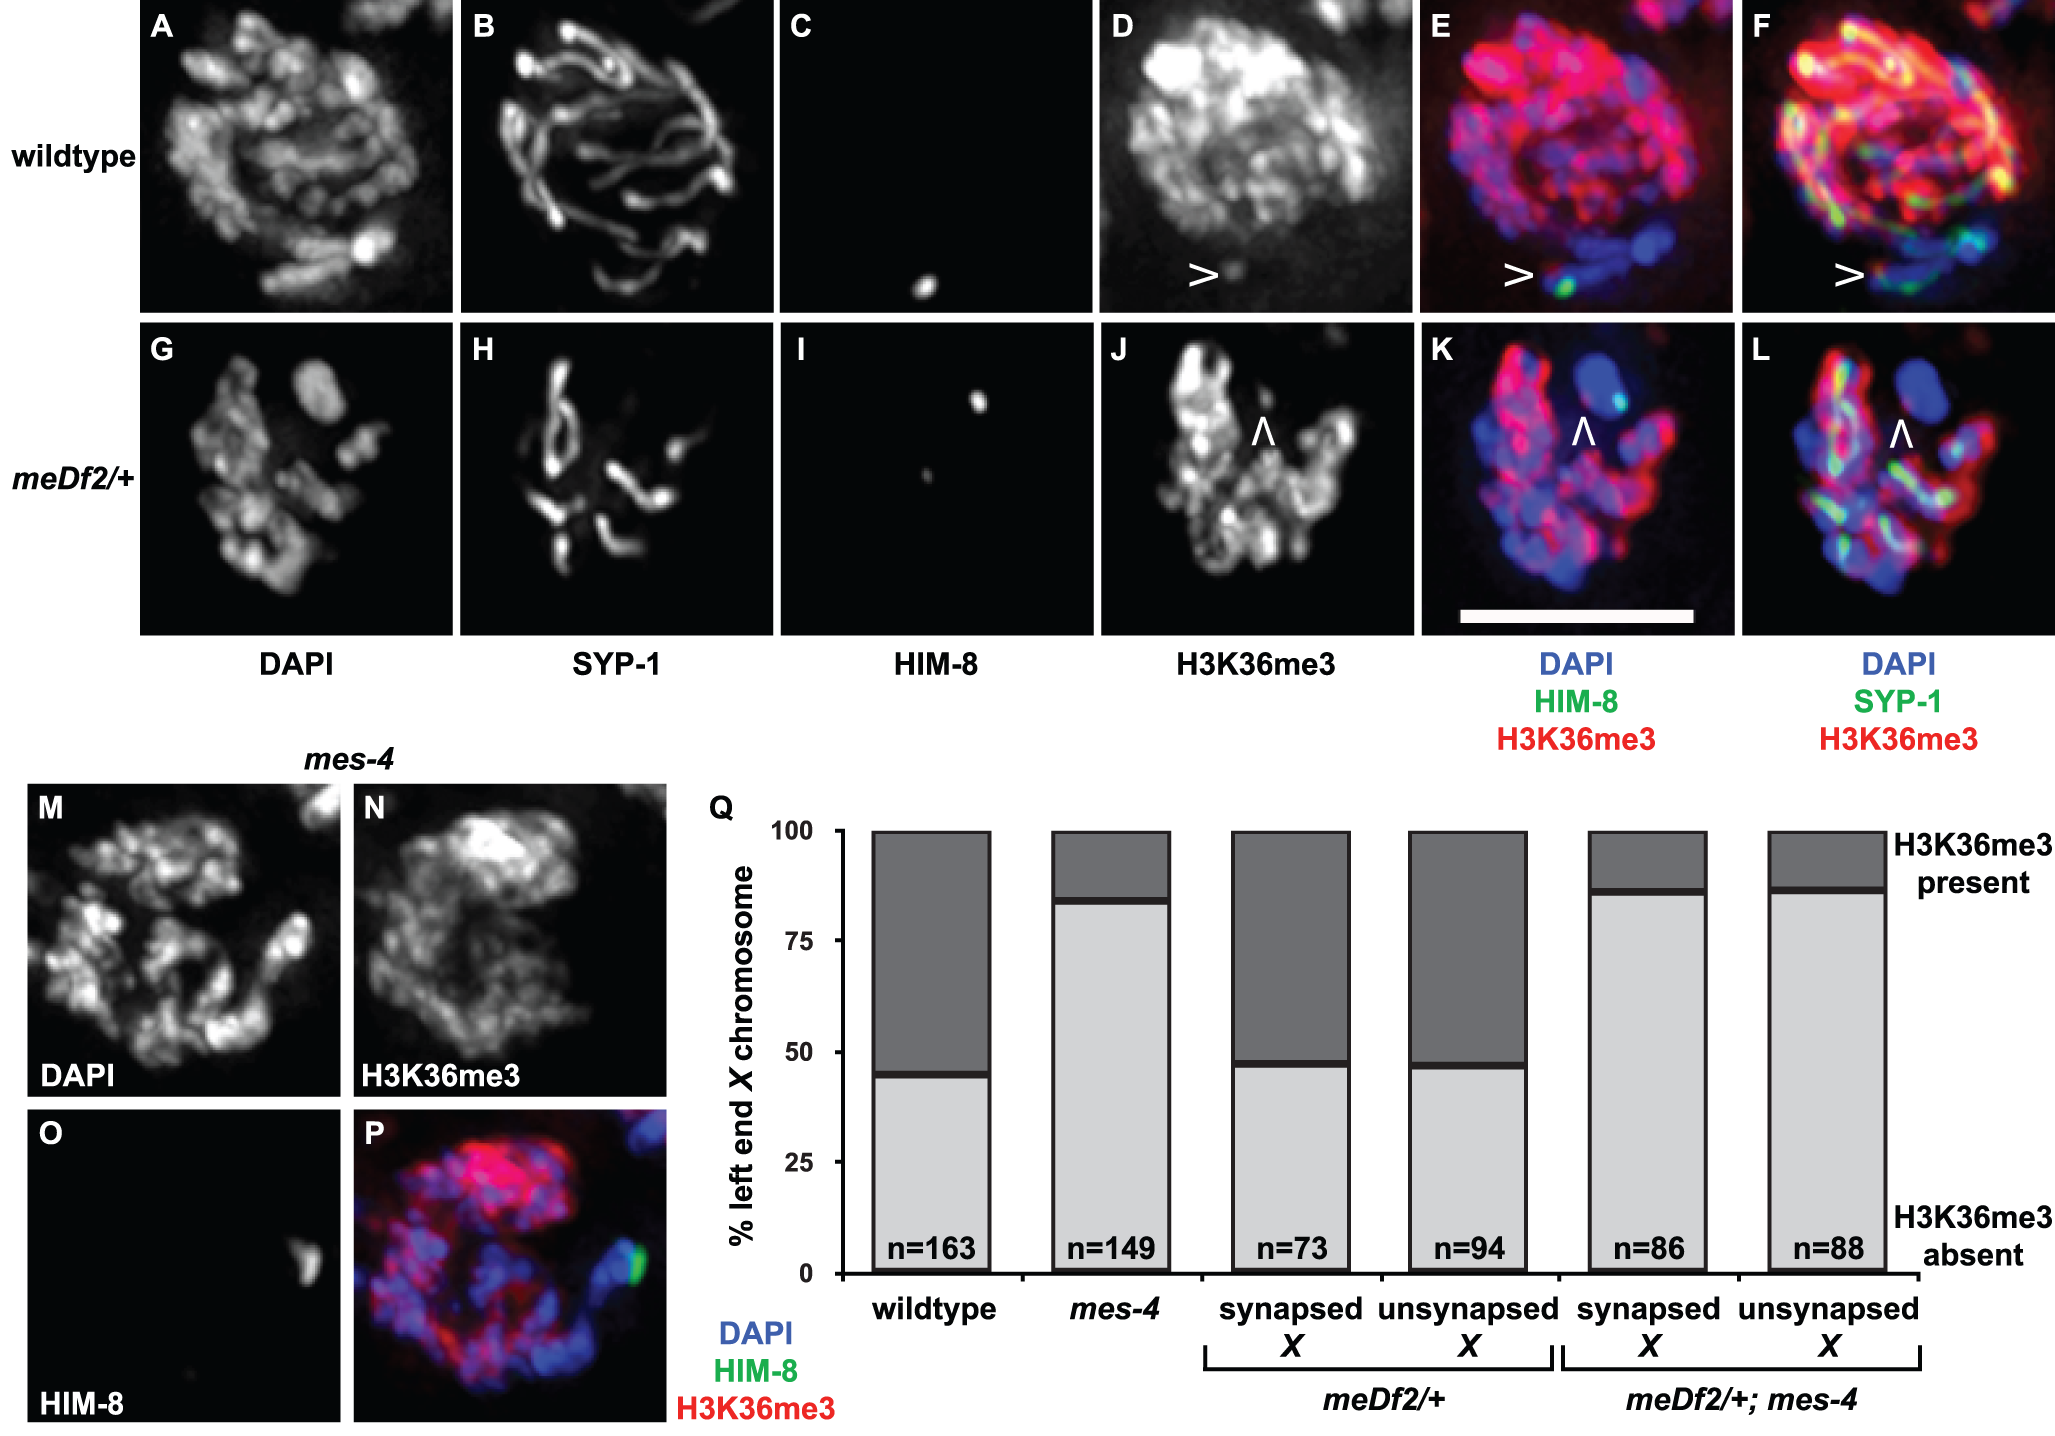 Is H3K36me3 the relevant chromatin modification for synapsis checkpoint activation?